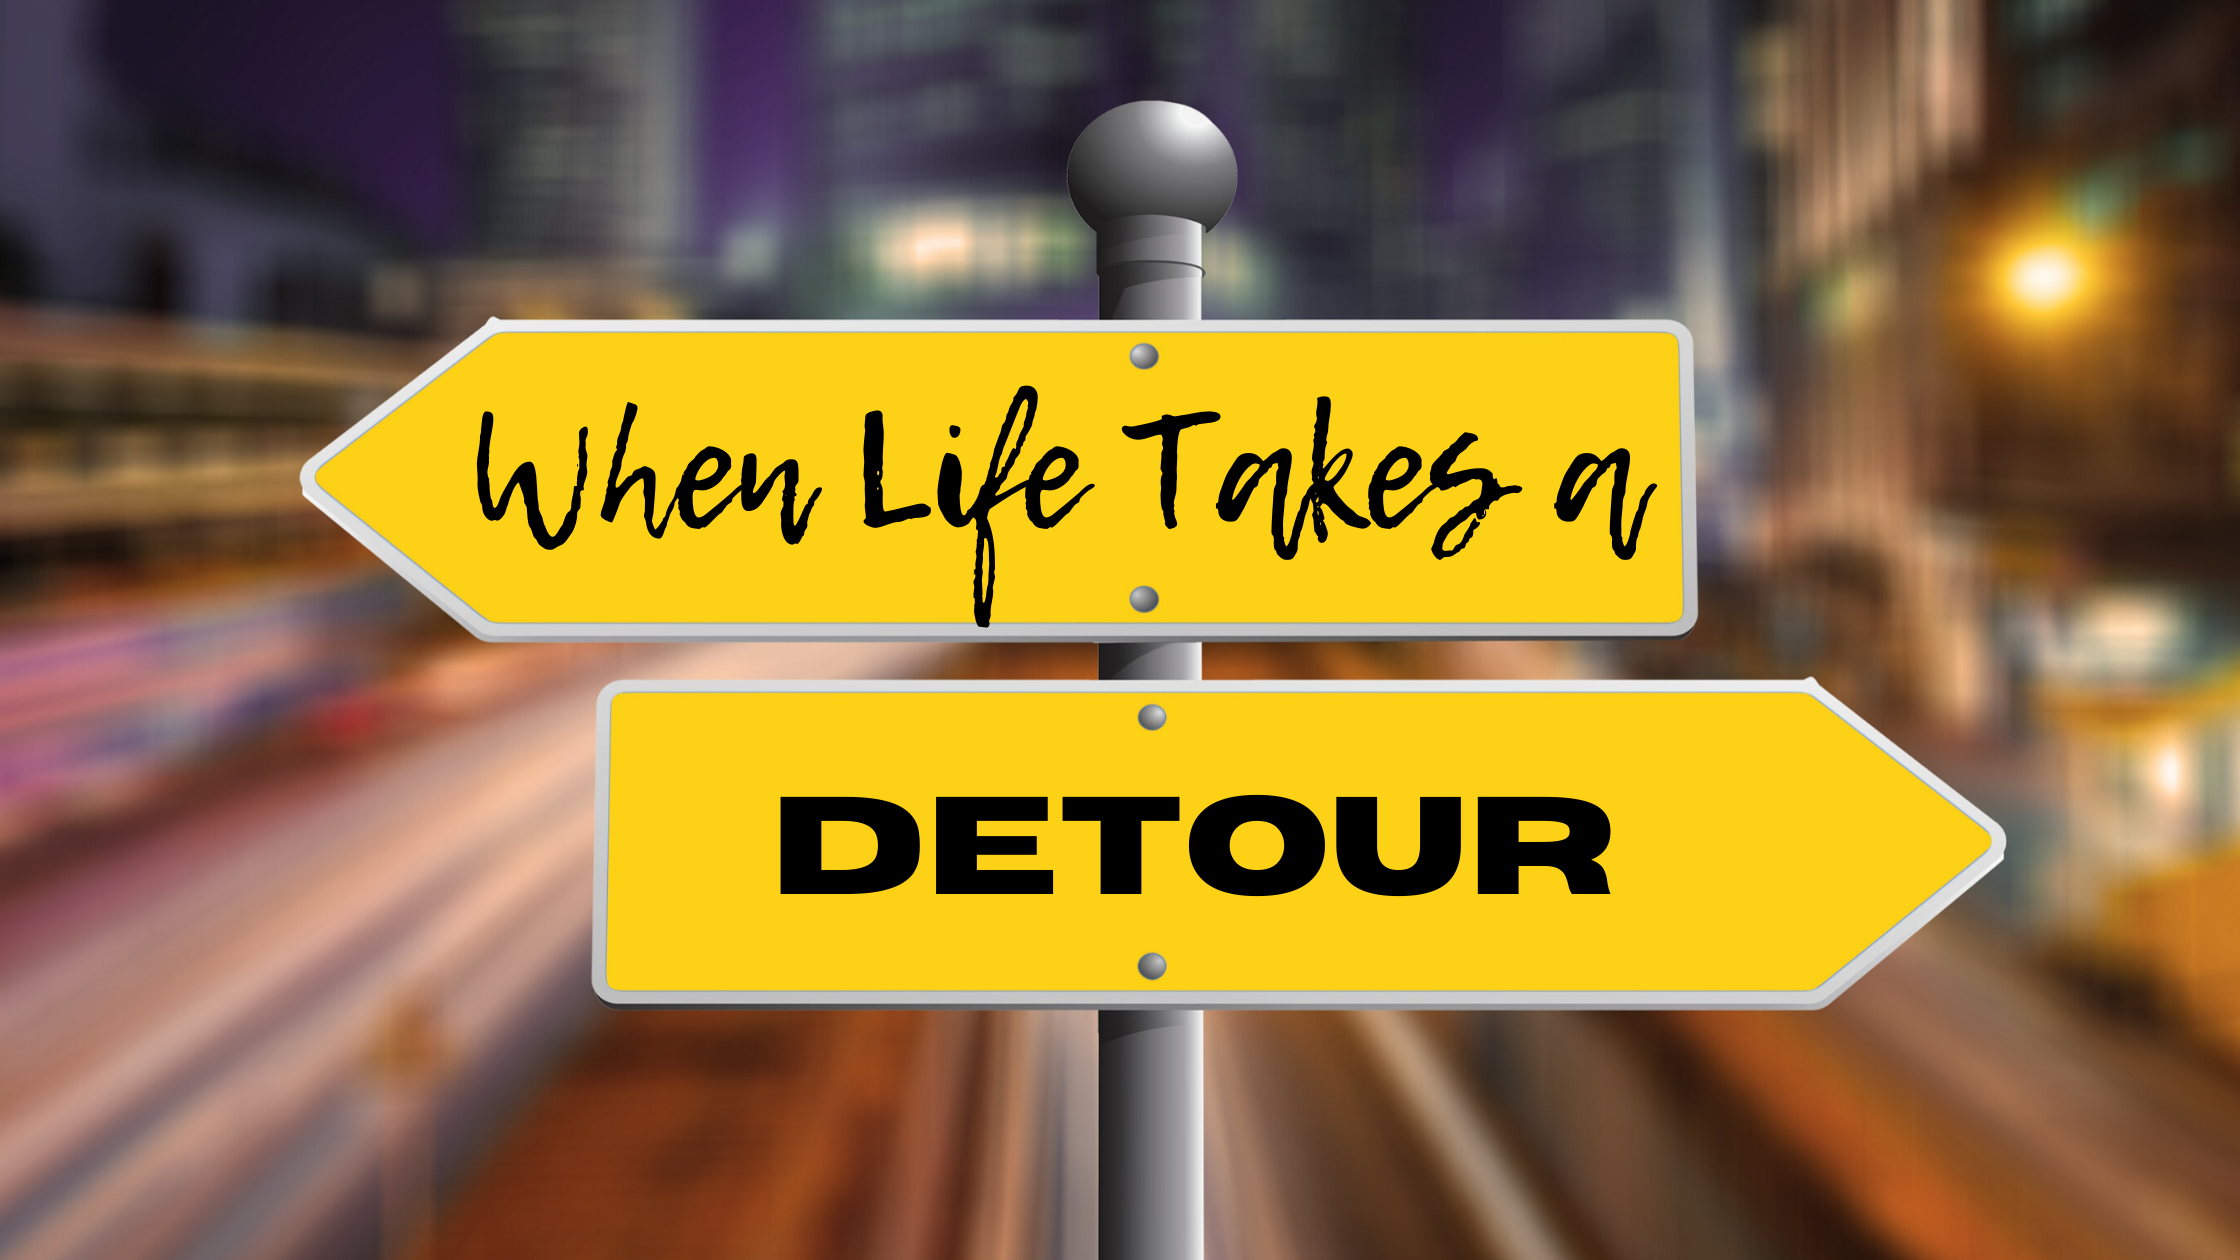 When Life Takes a Detour